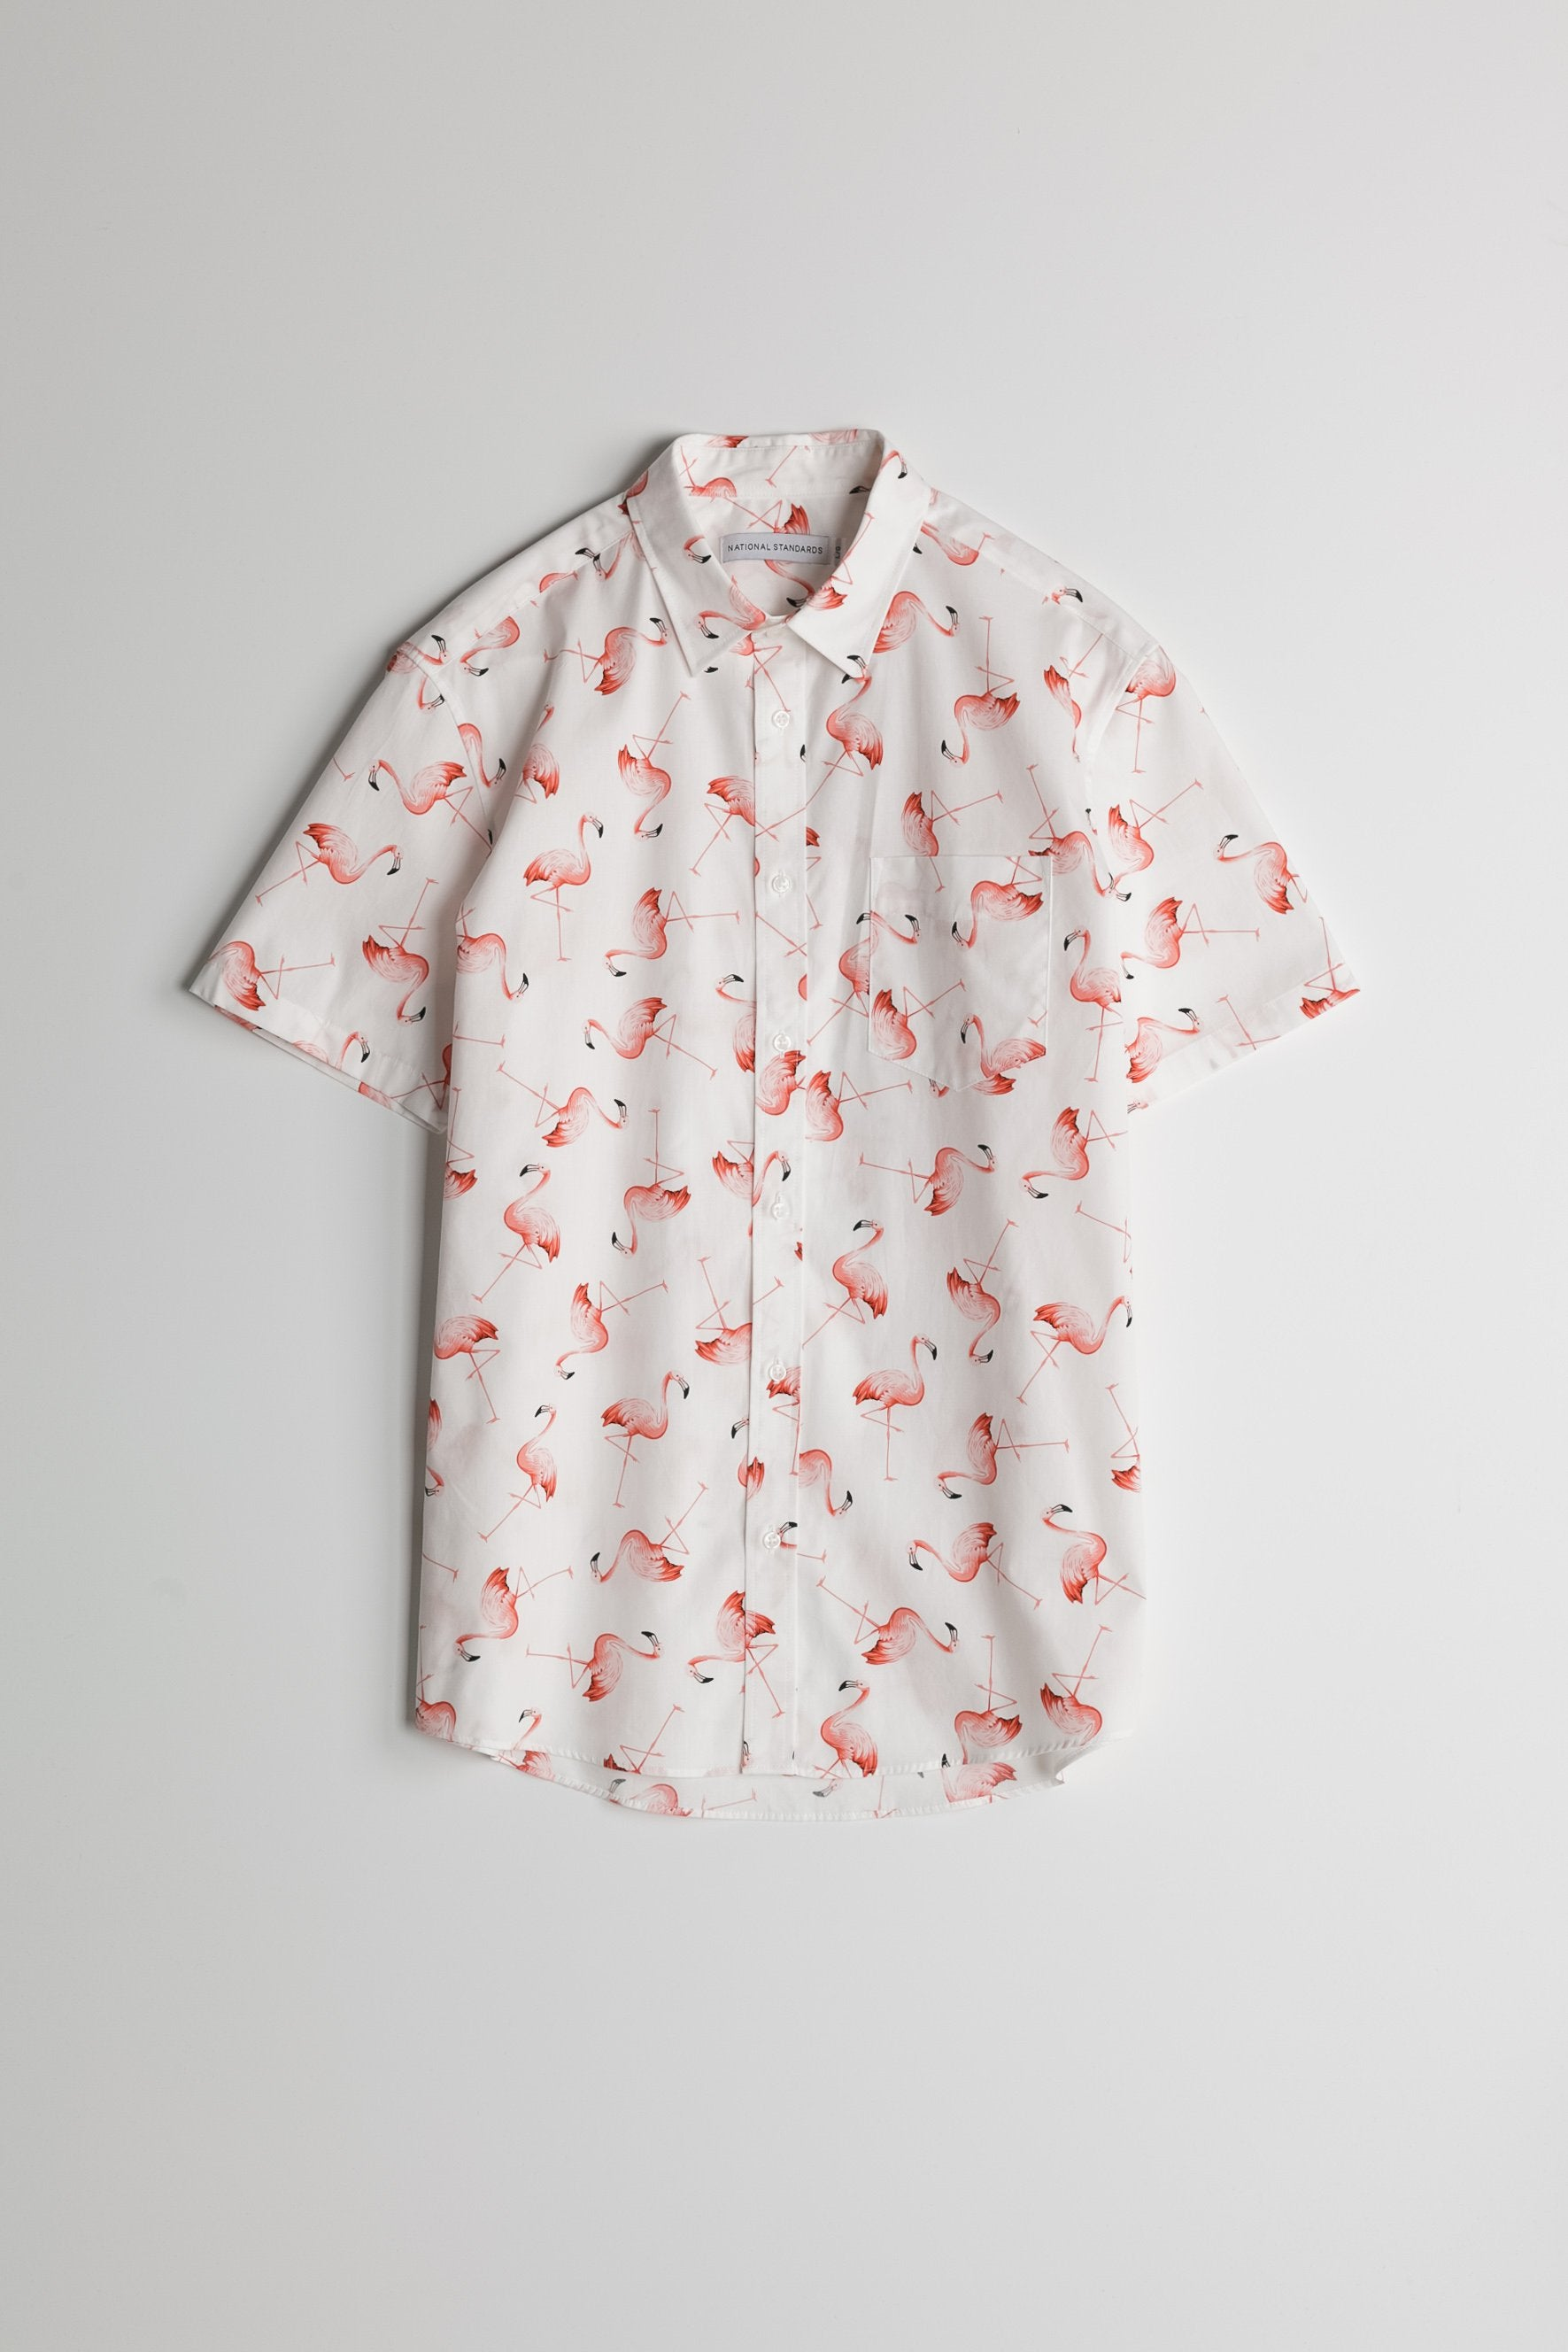 japanese-flamingo-print-in-white 01